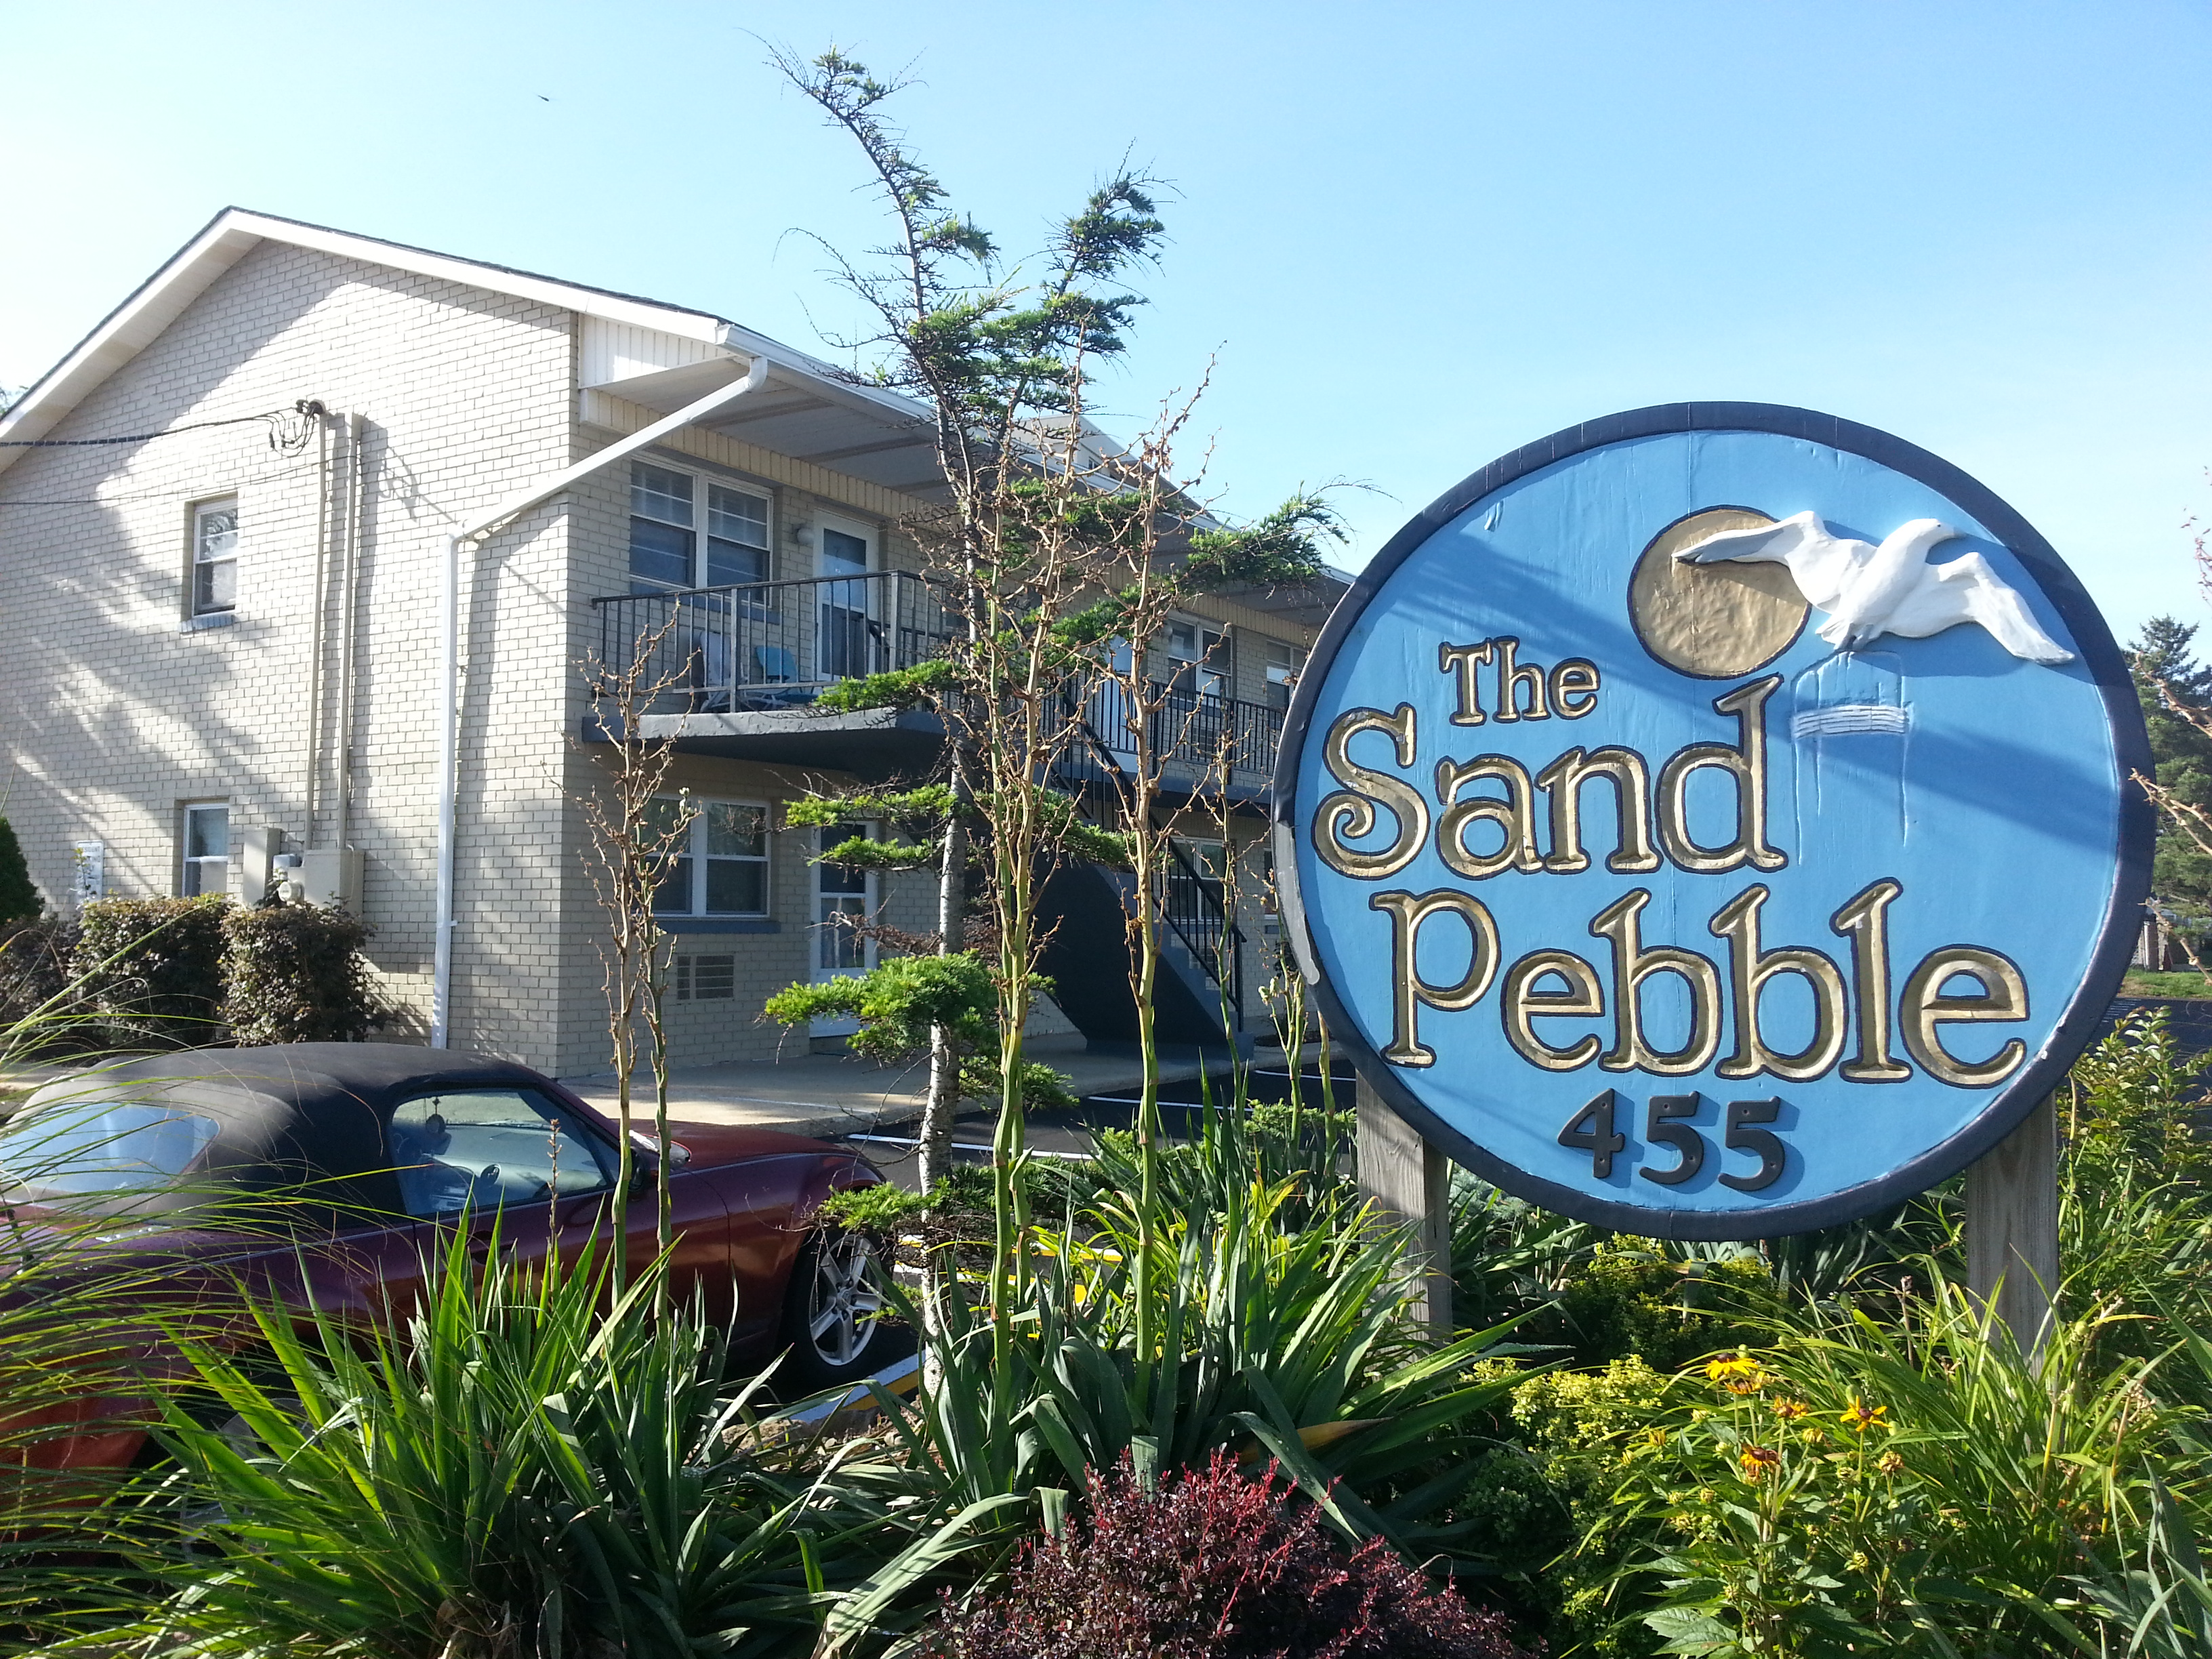 The Sandpebble Condiminium, located at 455 Ocean Blvd., is just 100 yards to the beach.